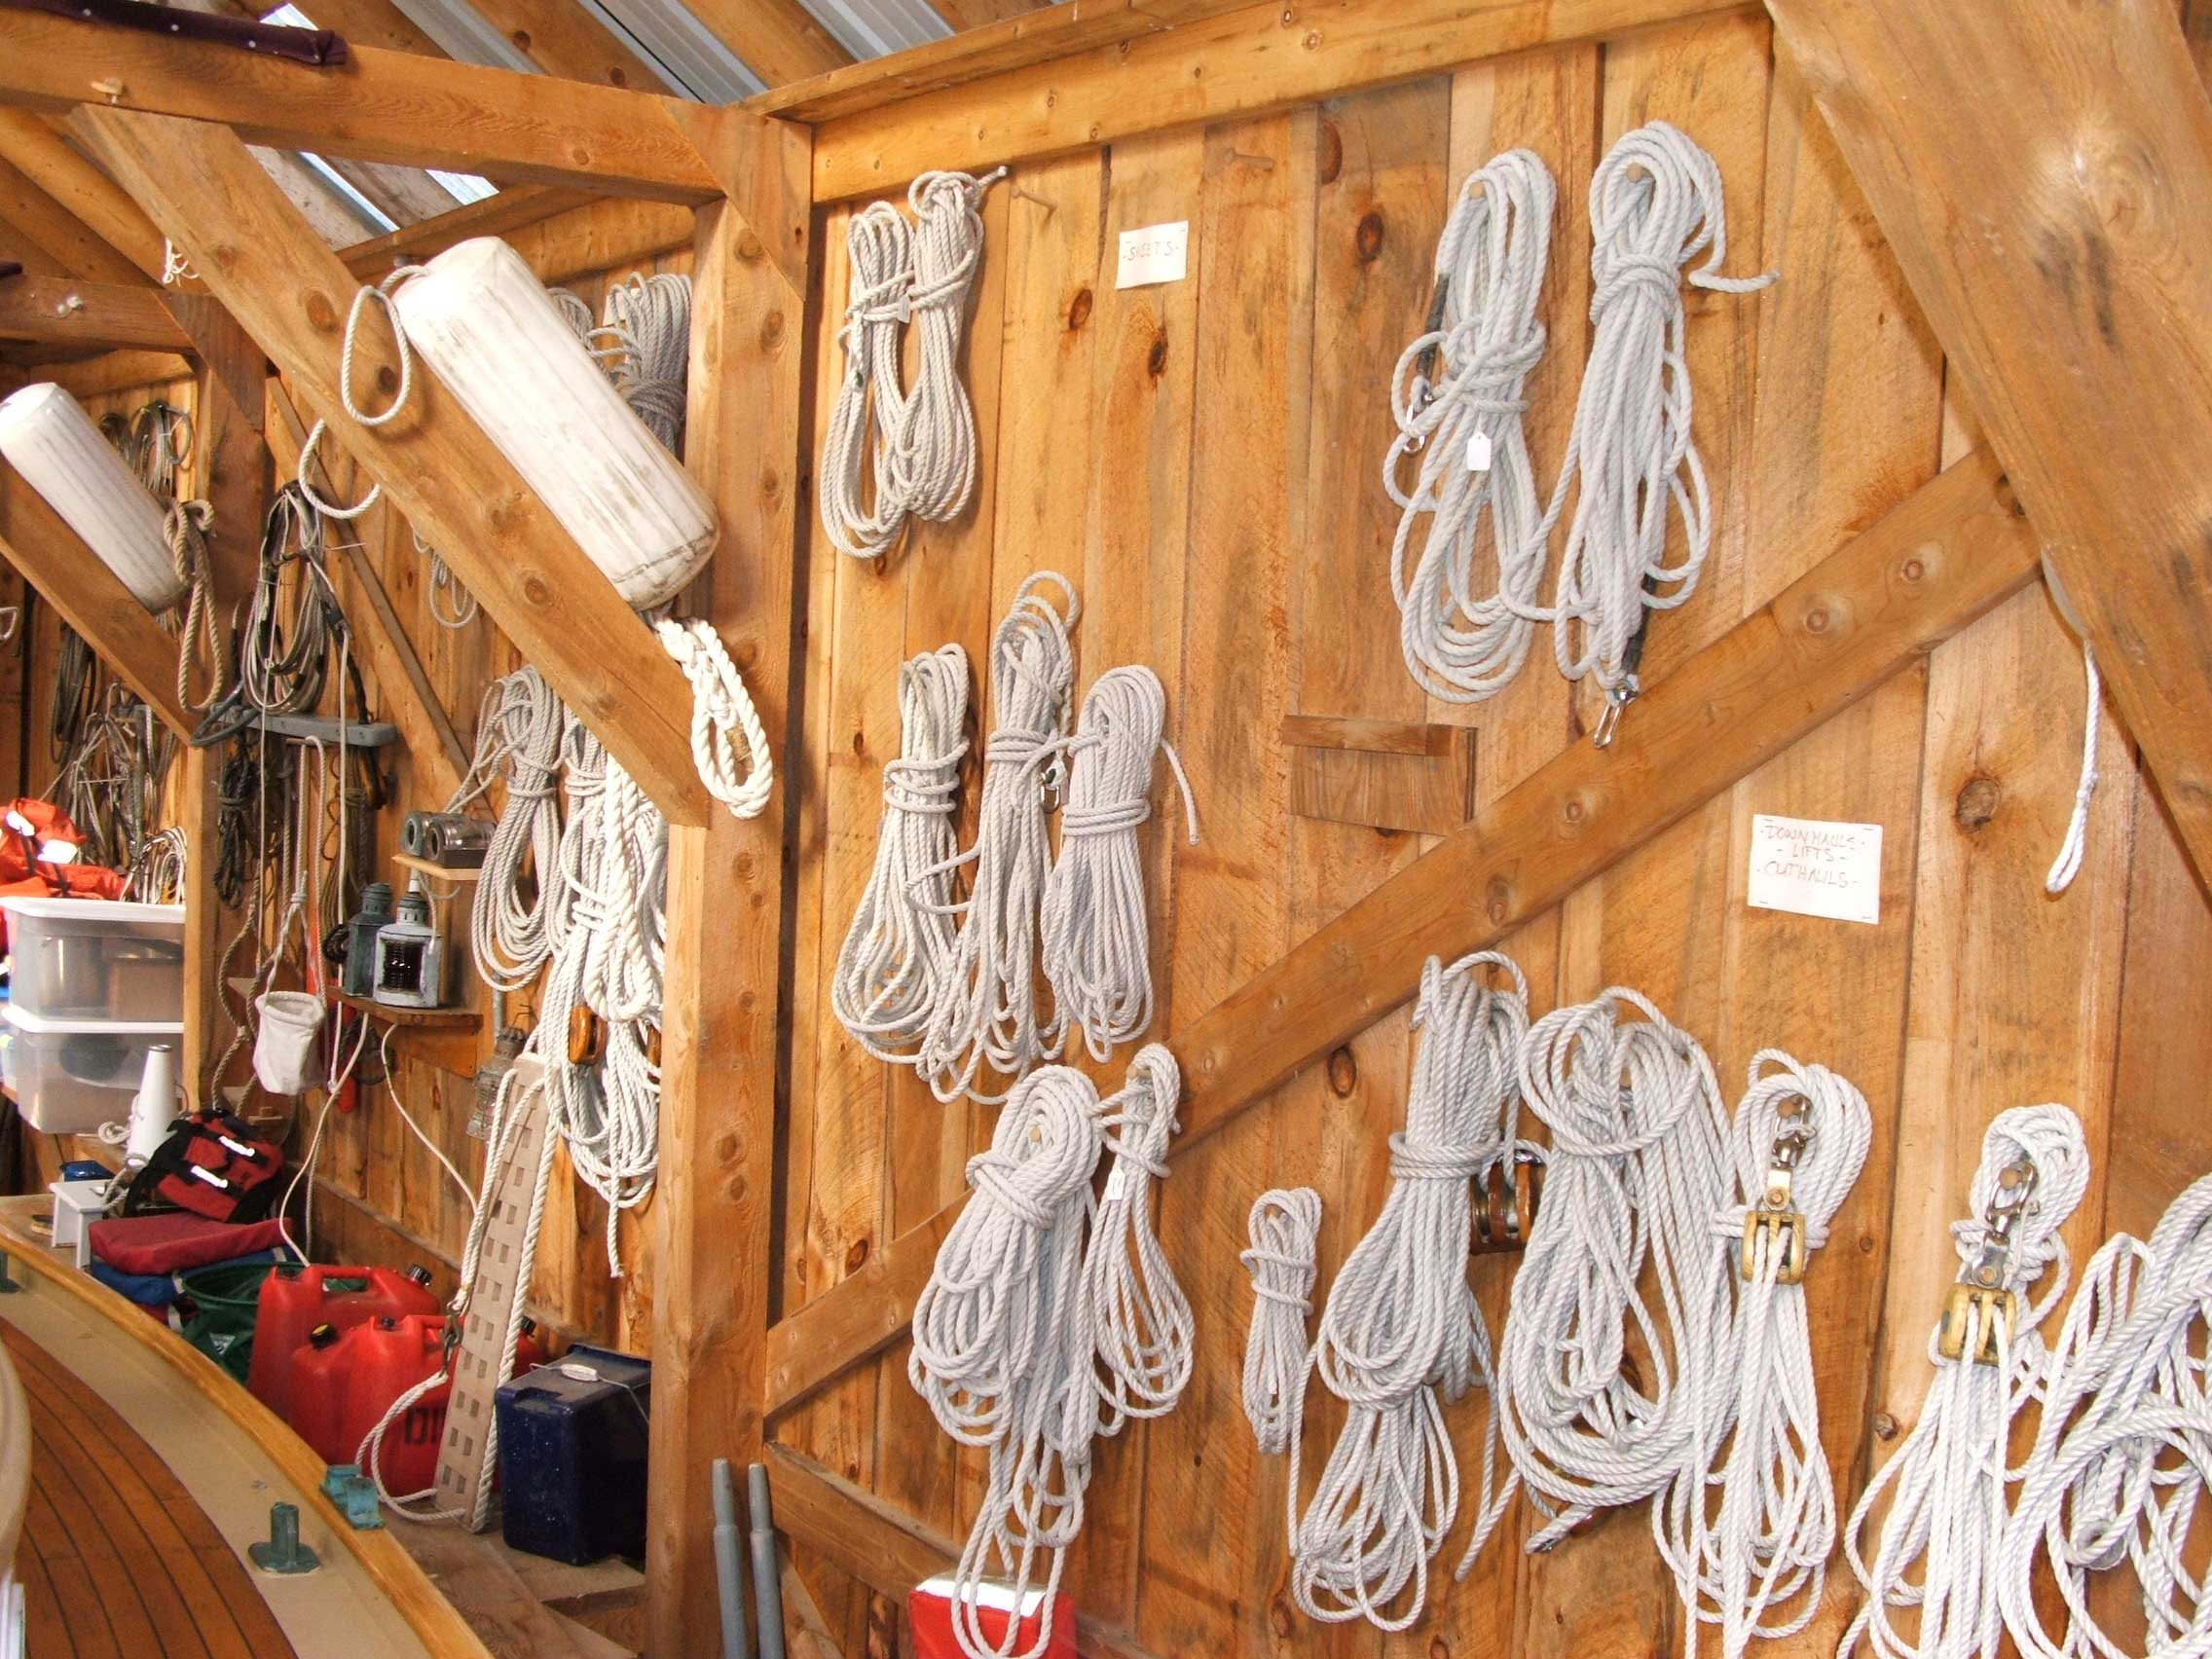 Stored rigging